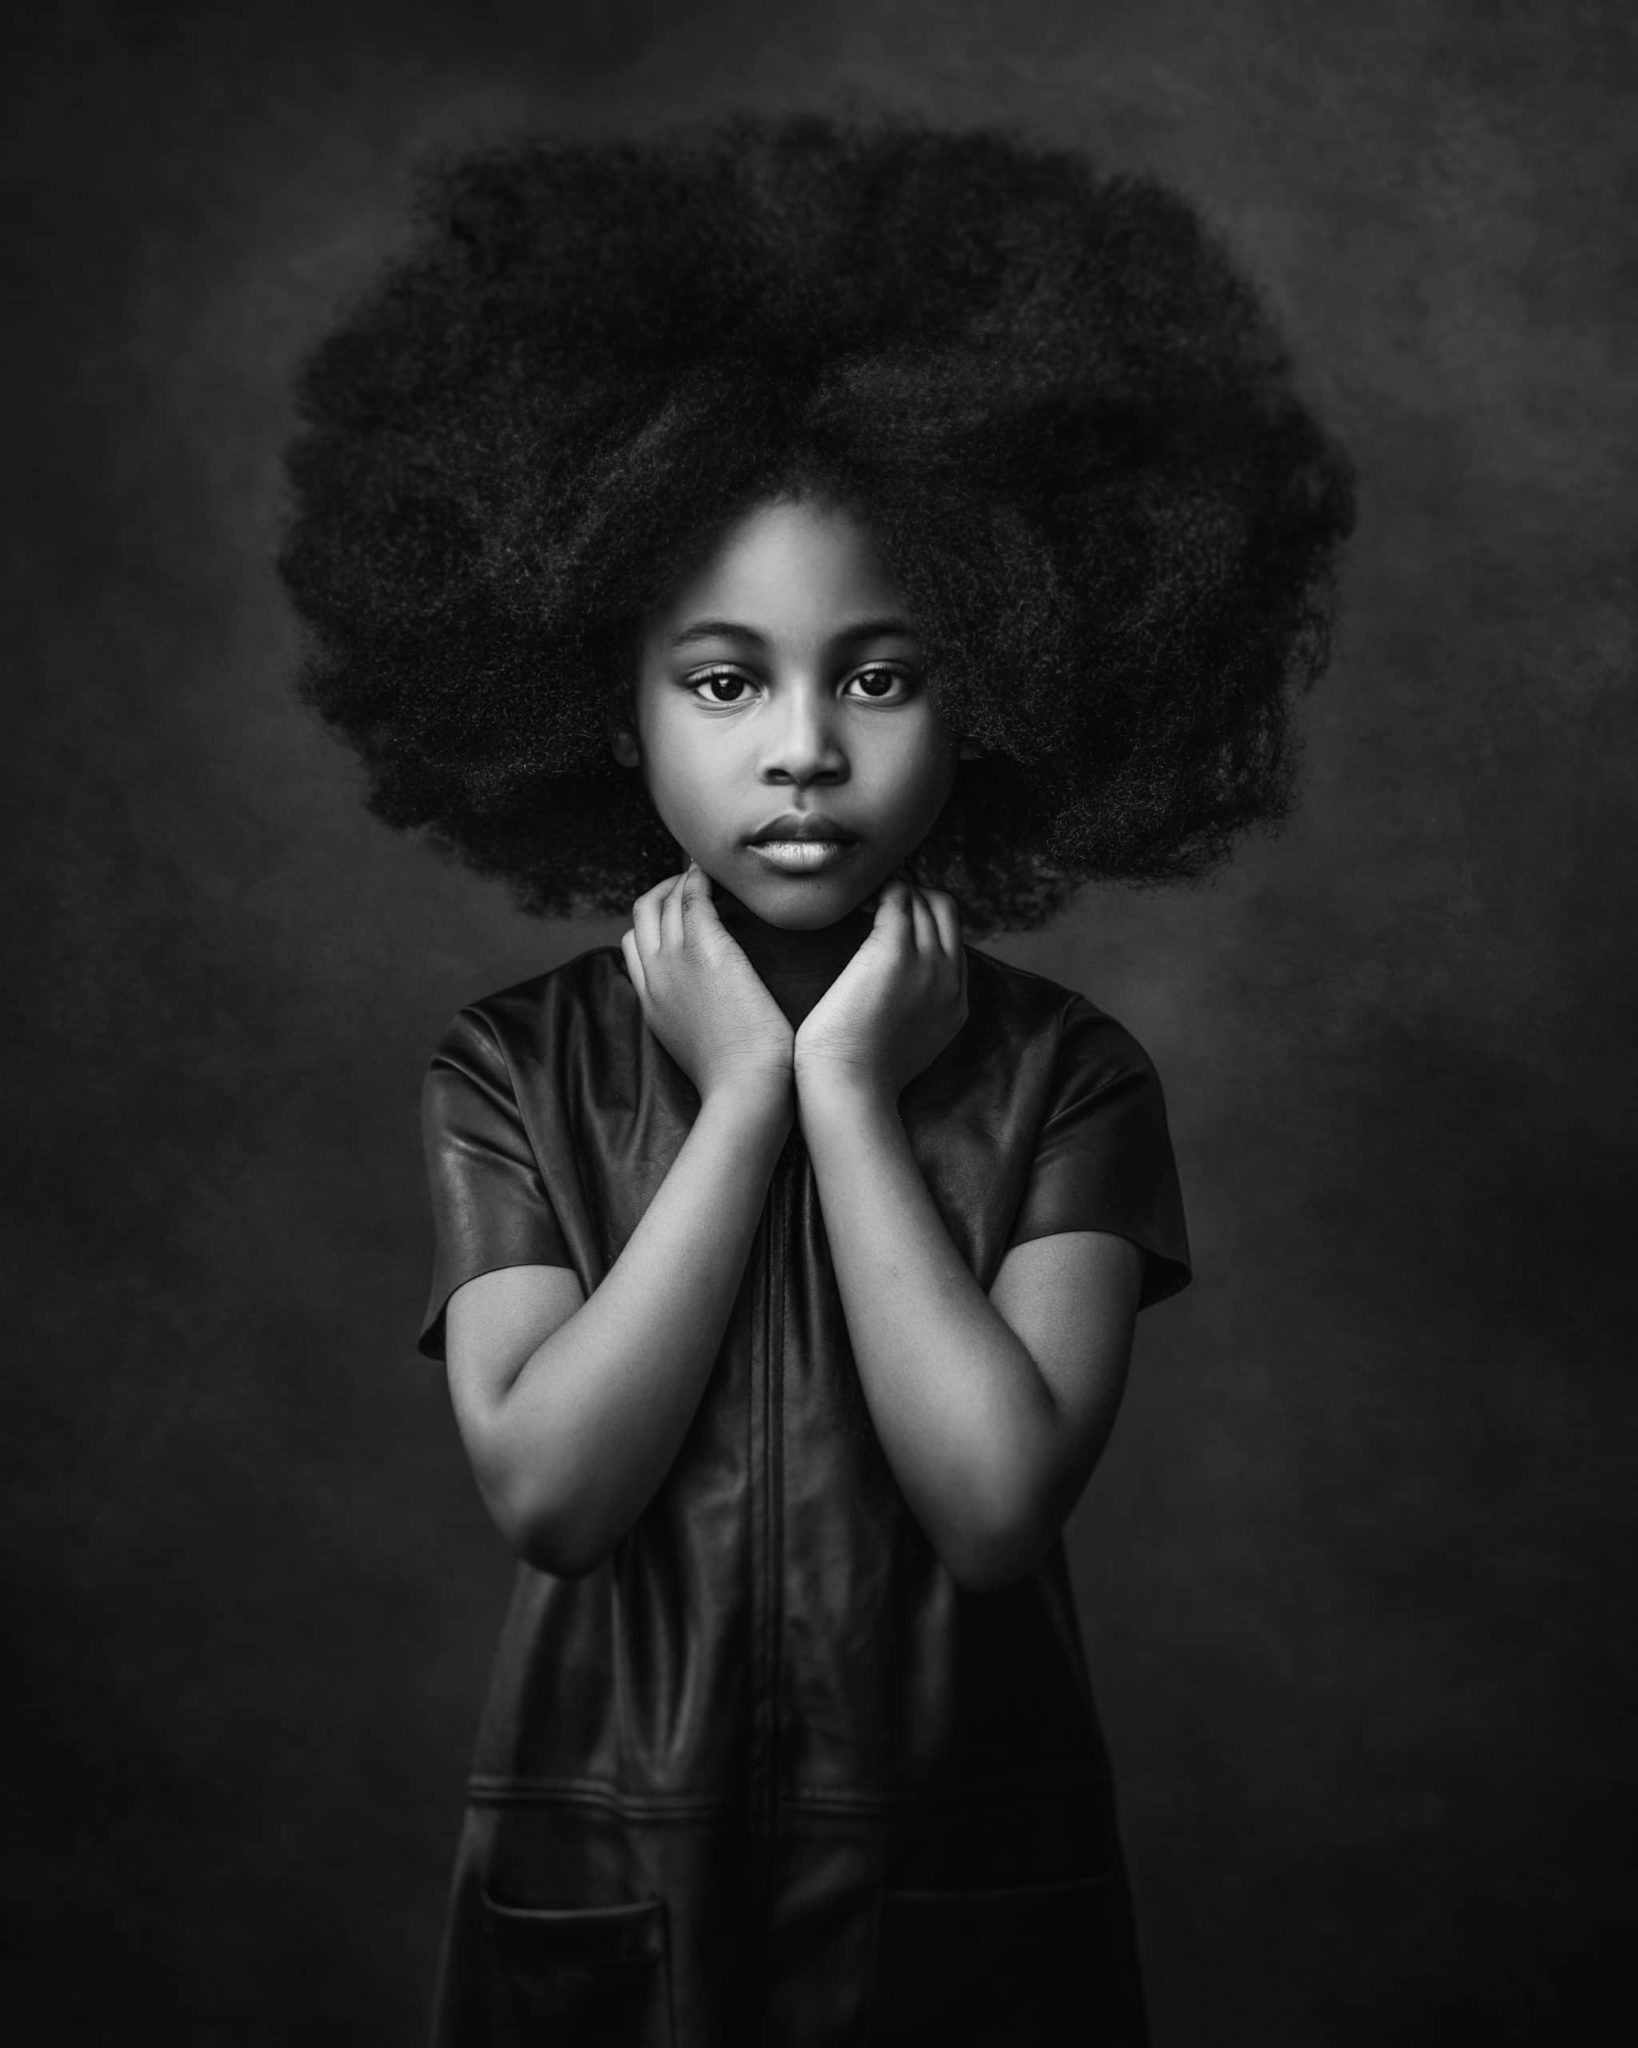 Afro American girl wearing black leather dress posing with hands around her neck for a fine art portrait